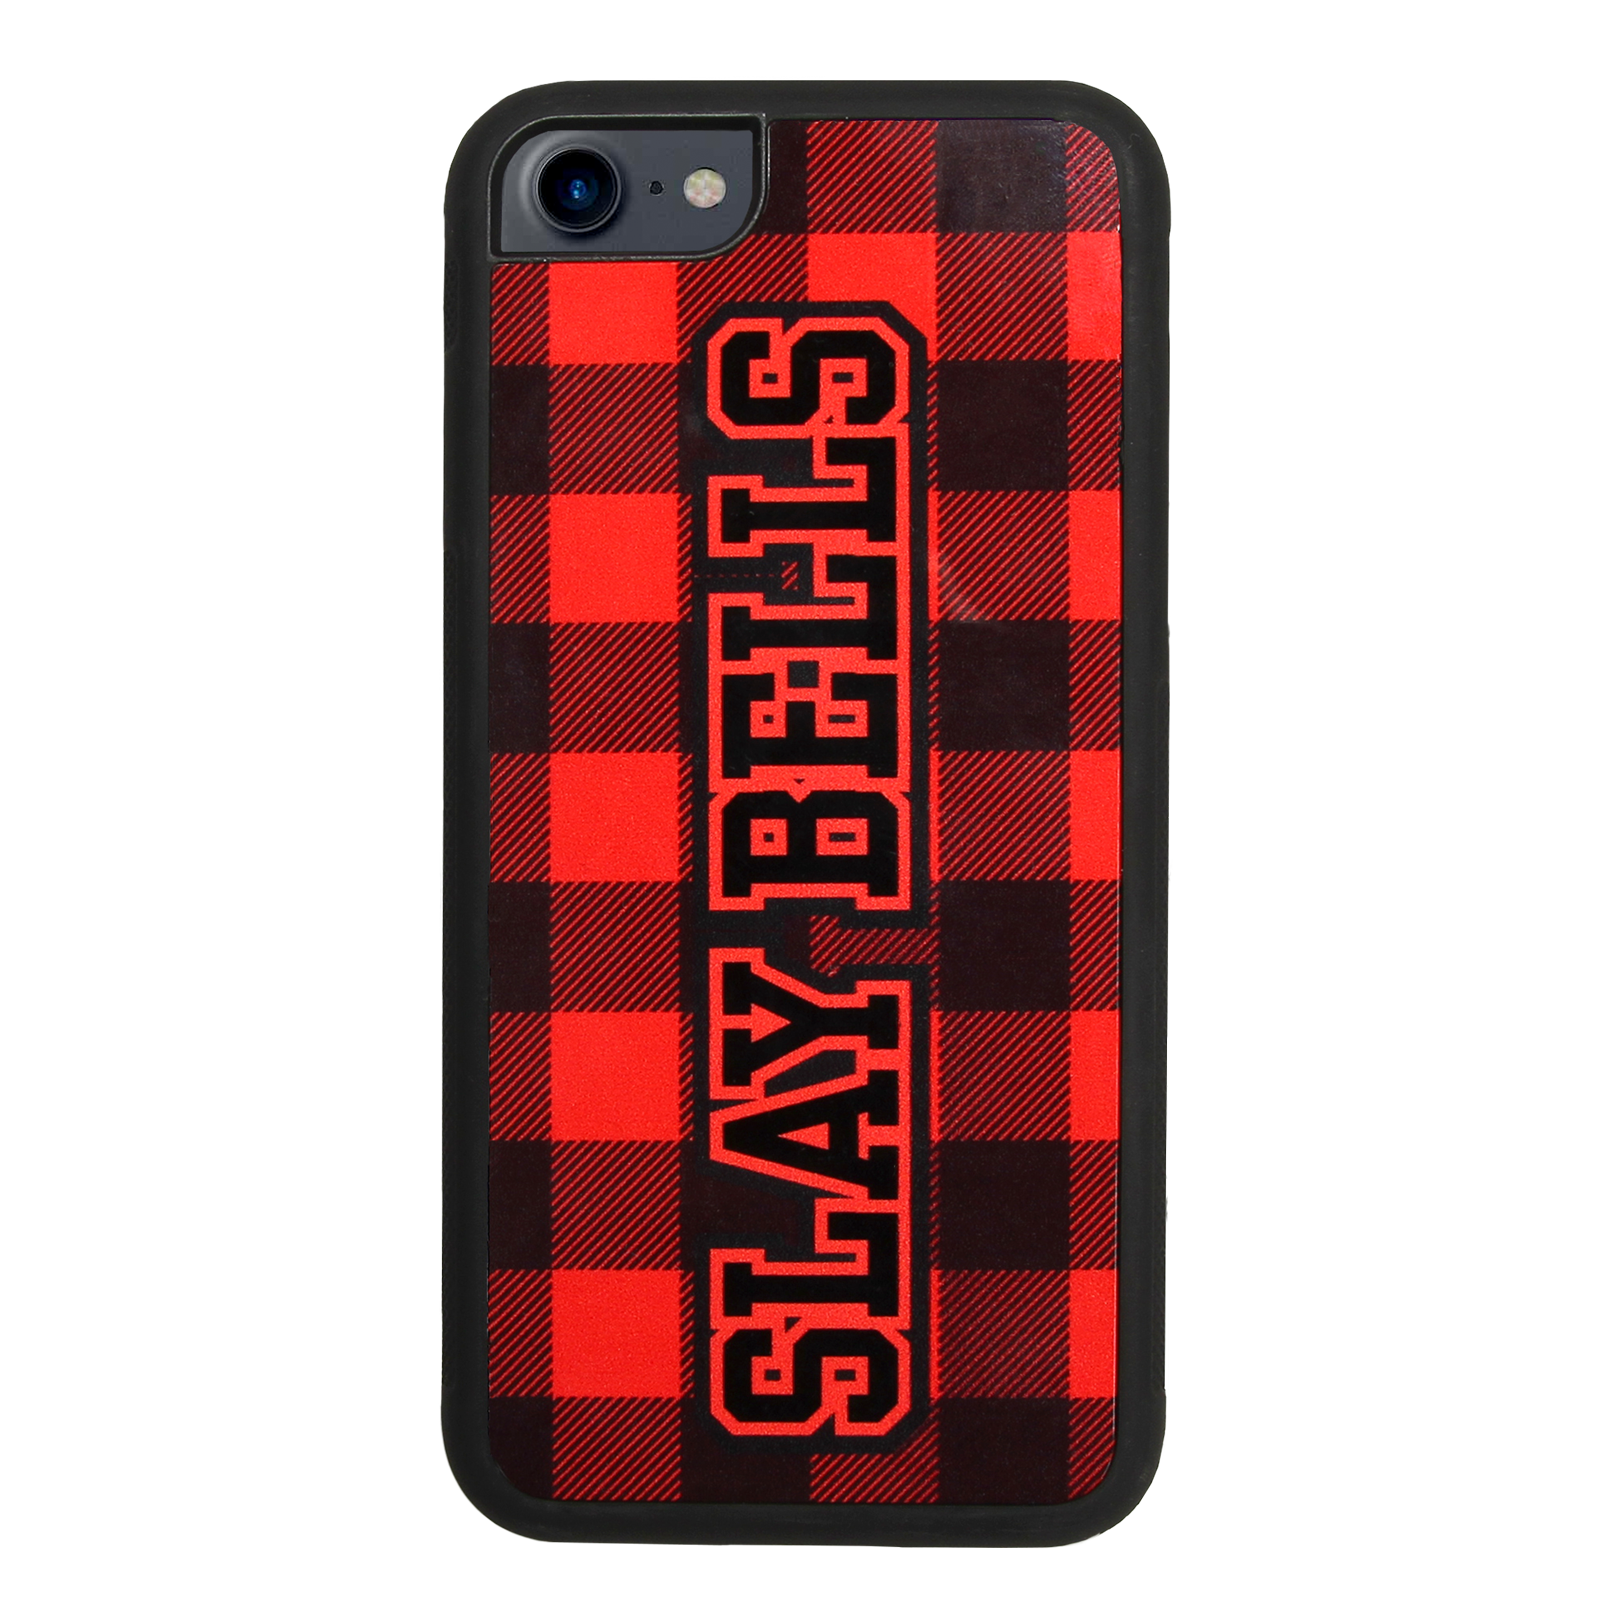 Slaybells_phonecase